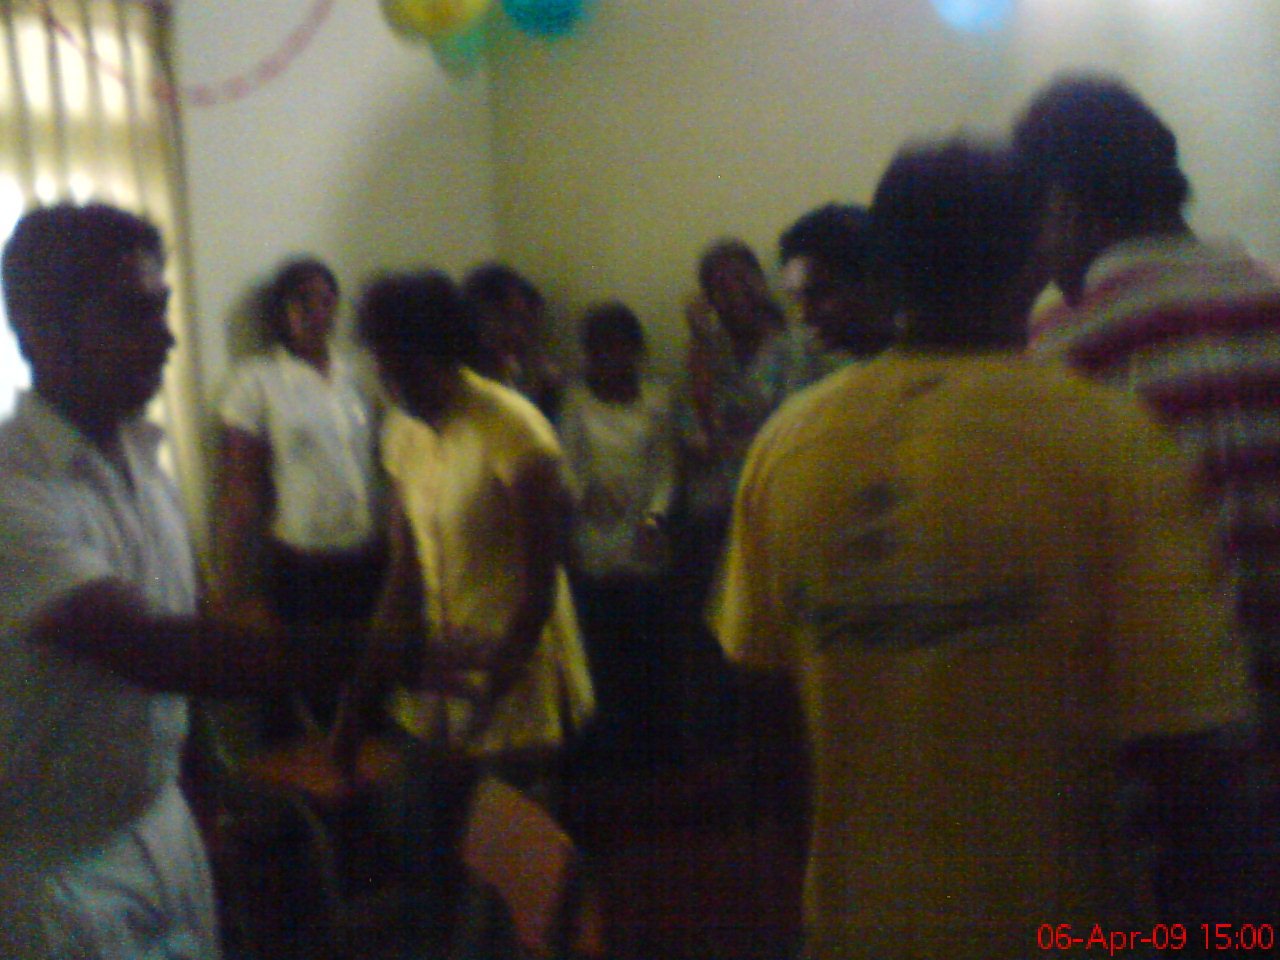 A game at Farewell party of Batch 93